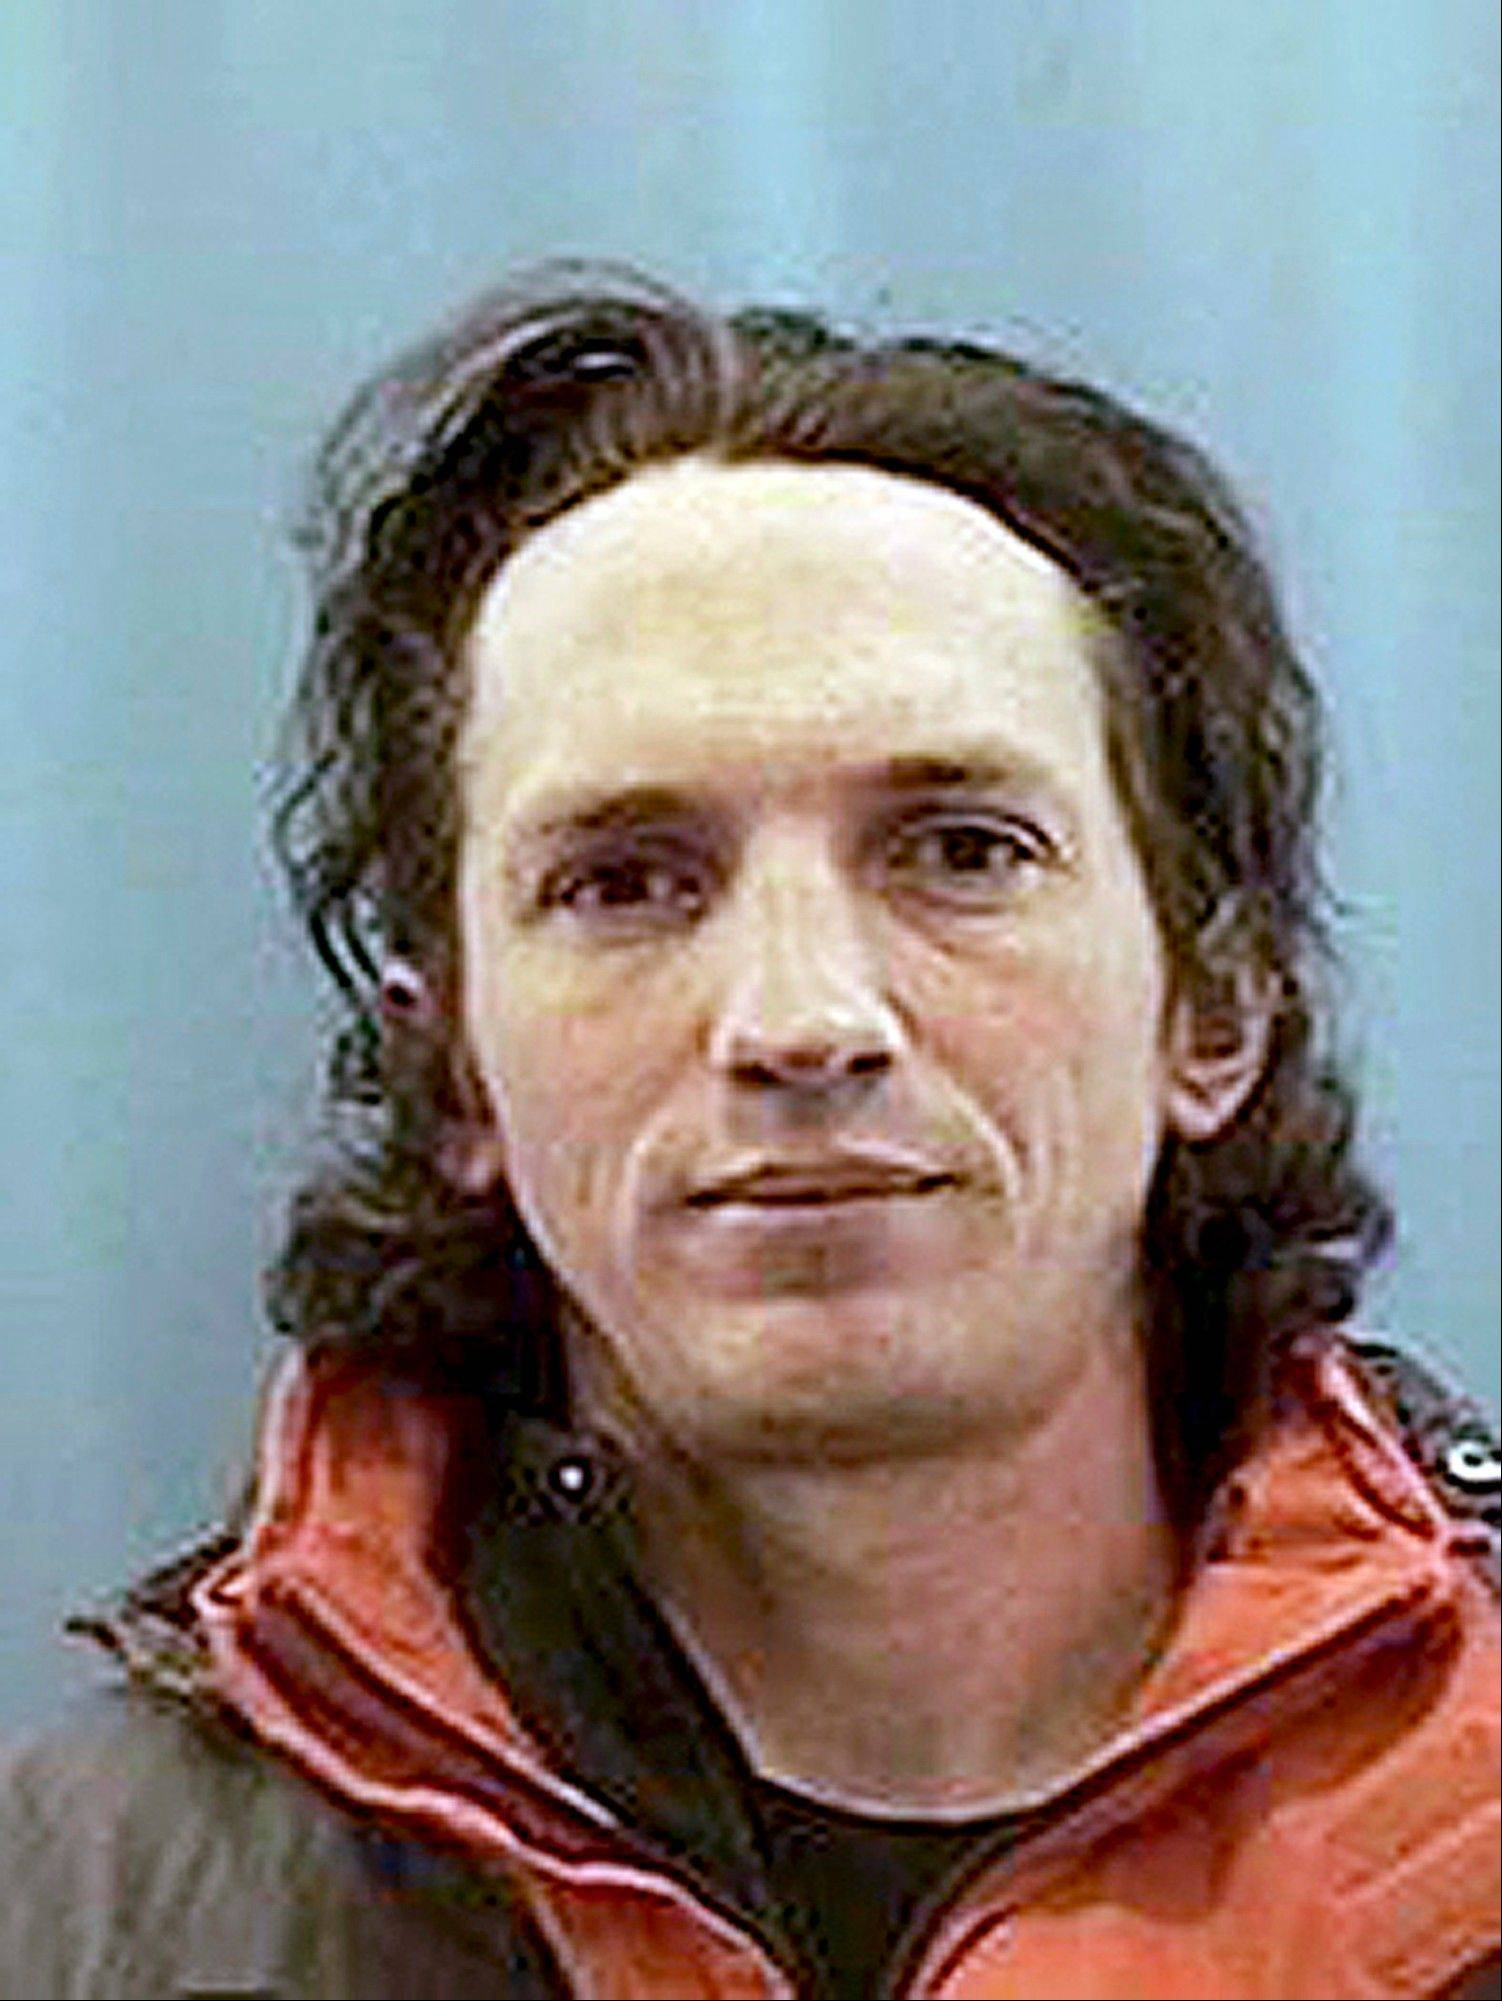 Israel Keyes, charged in the death of an Alaska barista, has killed himself, and authorities say he was linked to at least seven other possible slayings in three other states. Keyes was found dead Sunday in his Anchorage jail cell. Officials say it was a suicide.